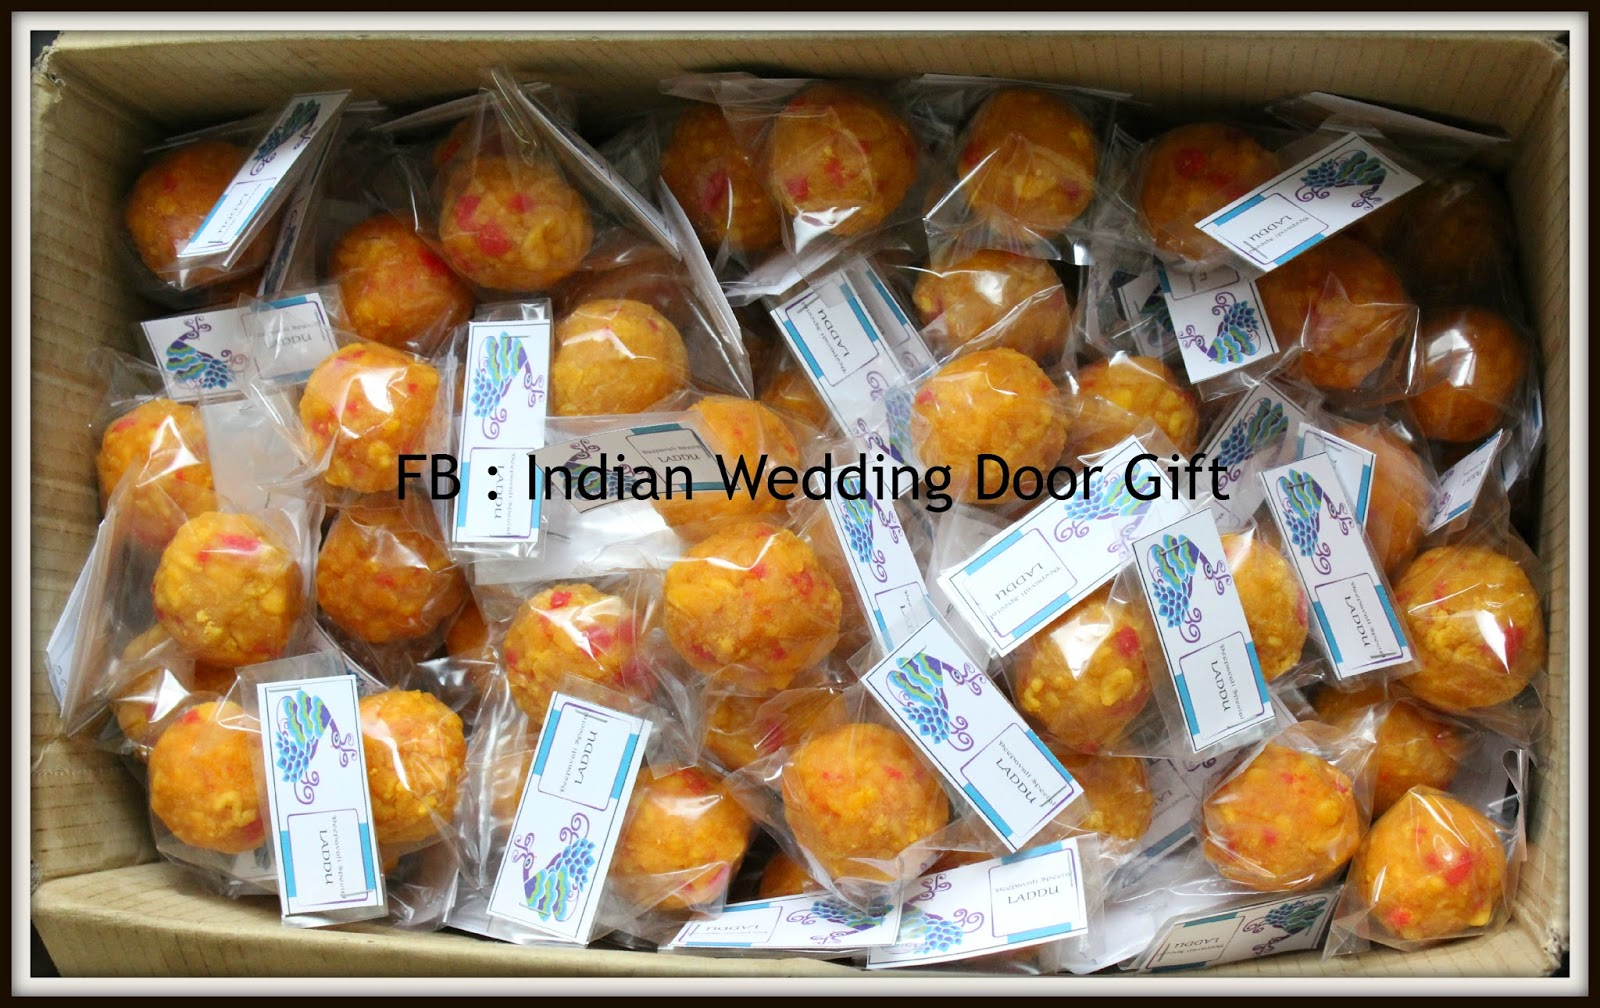 Diy Indian Wedding Door Gift : Laddu in Plain Plastic with Simple Paper Tag